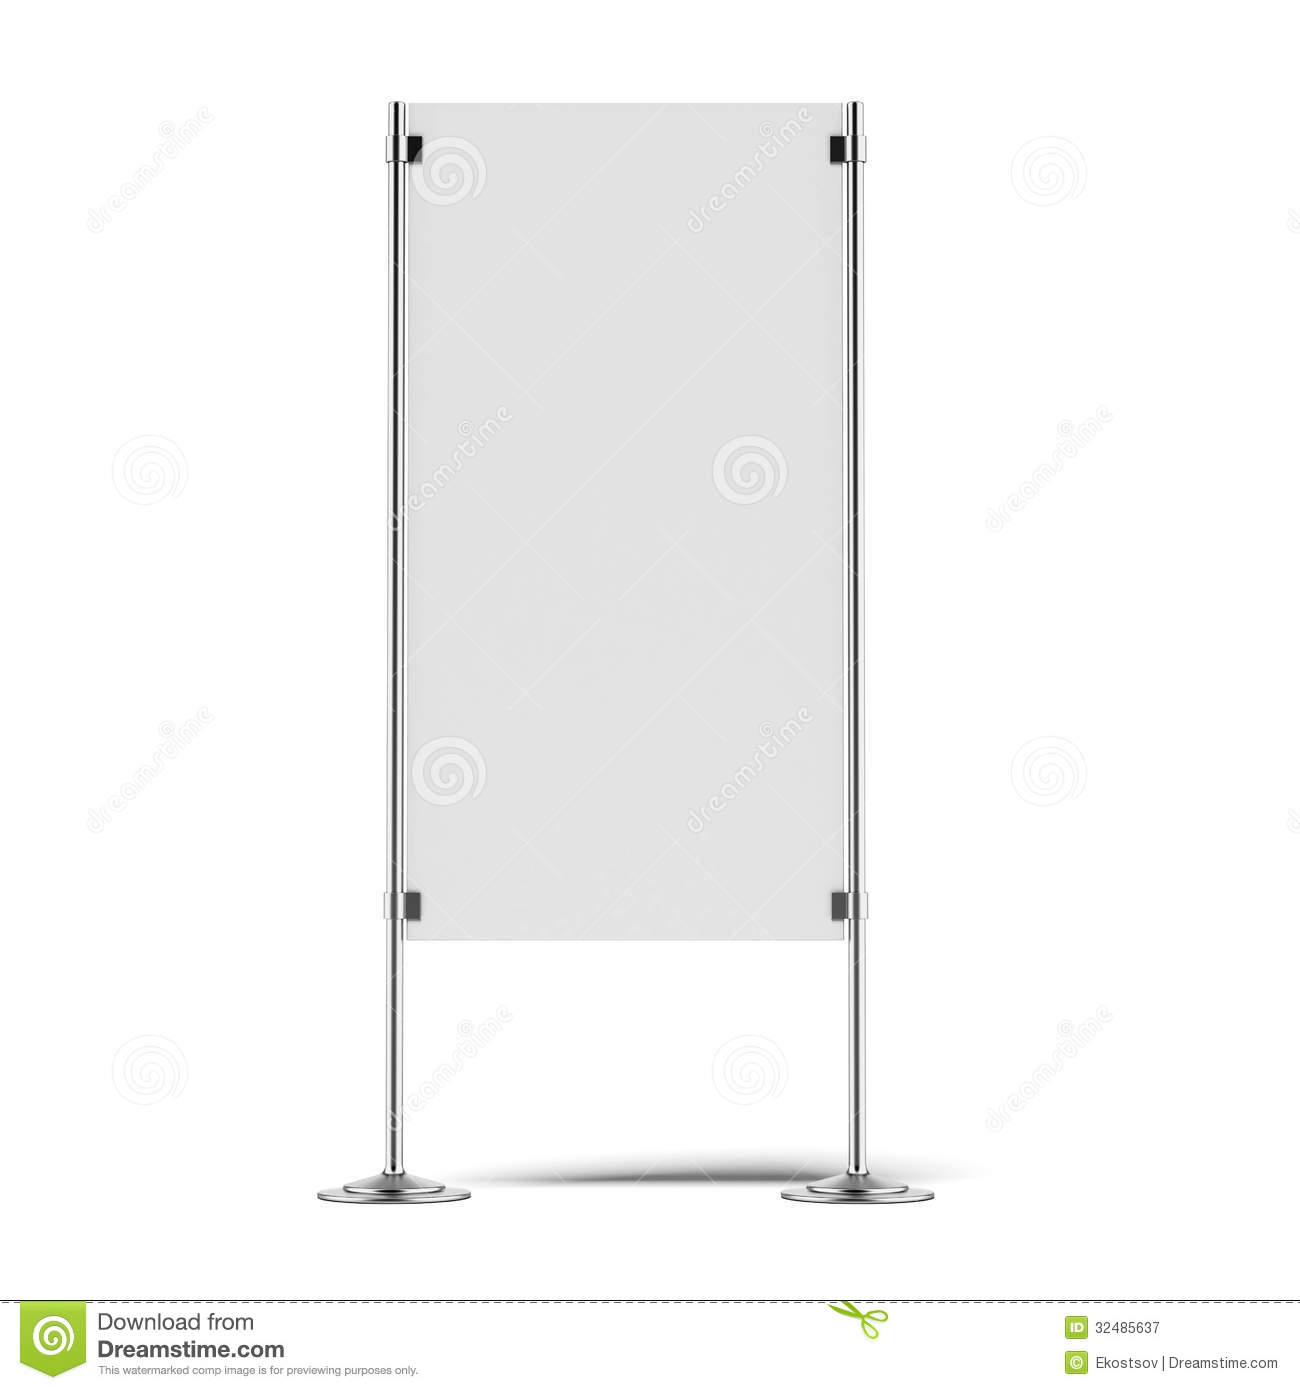 Marketing Exhibition Stand Vector : Advertising stand royalty free stock photography image